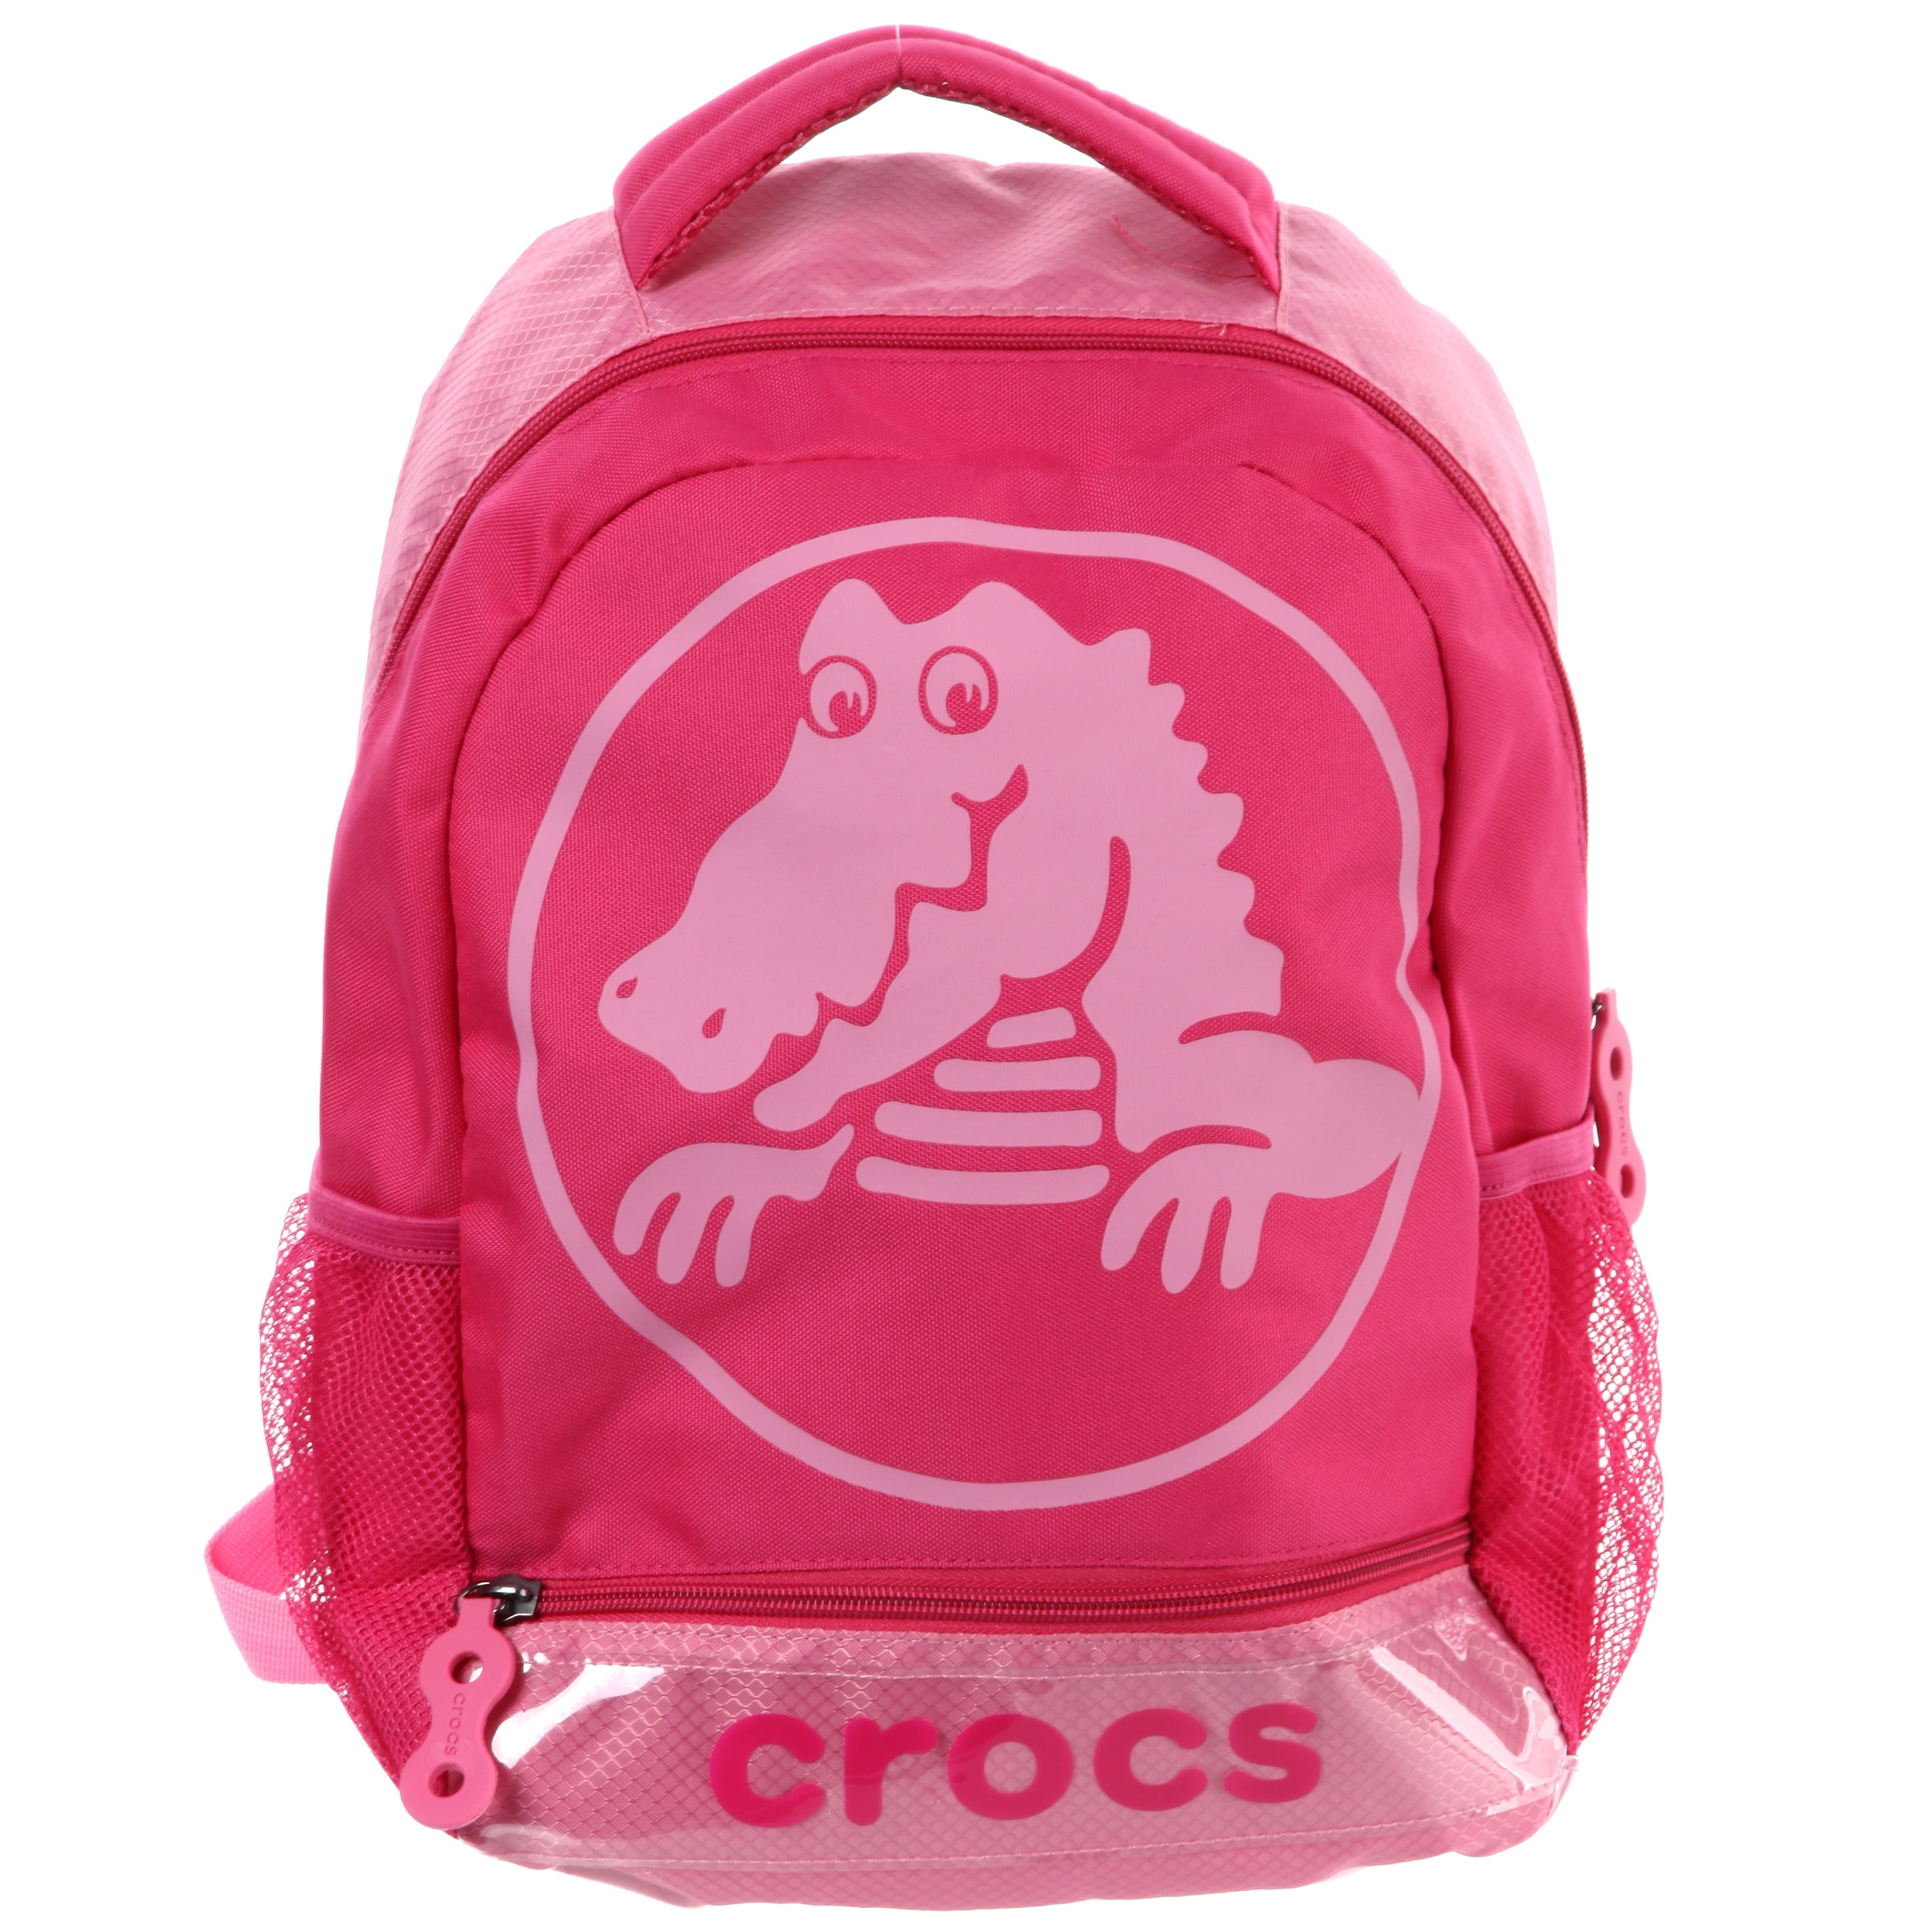 d680093184b4 Shop Crocs 16-inch Kids Backpack - Free Shipping On Orders Over  45 -  Overstock - 6639332